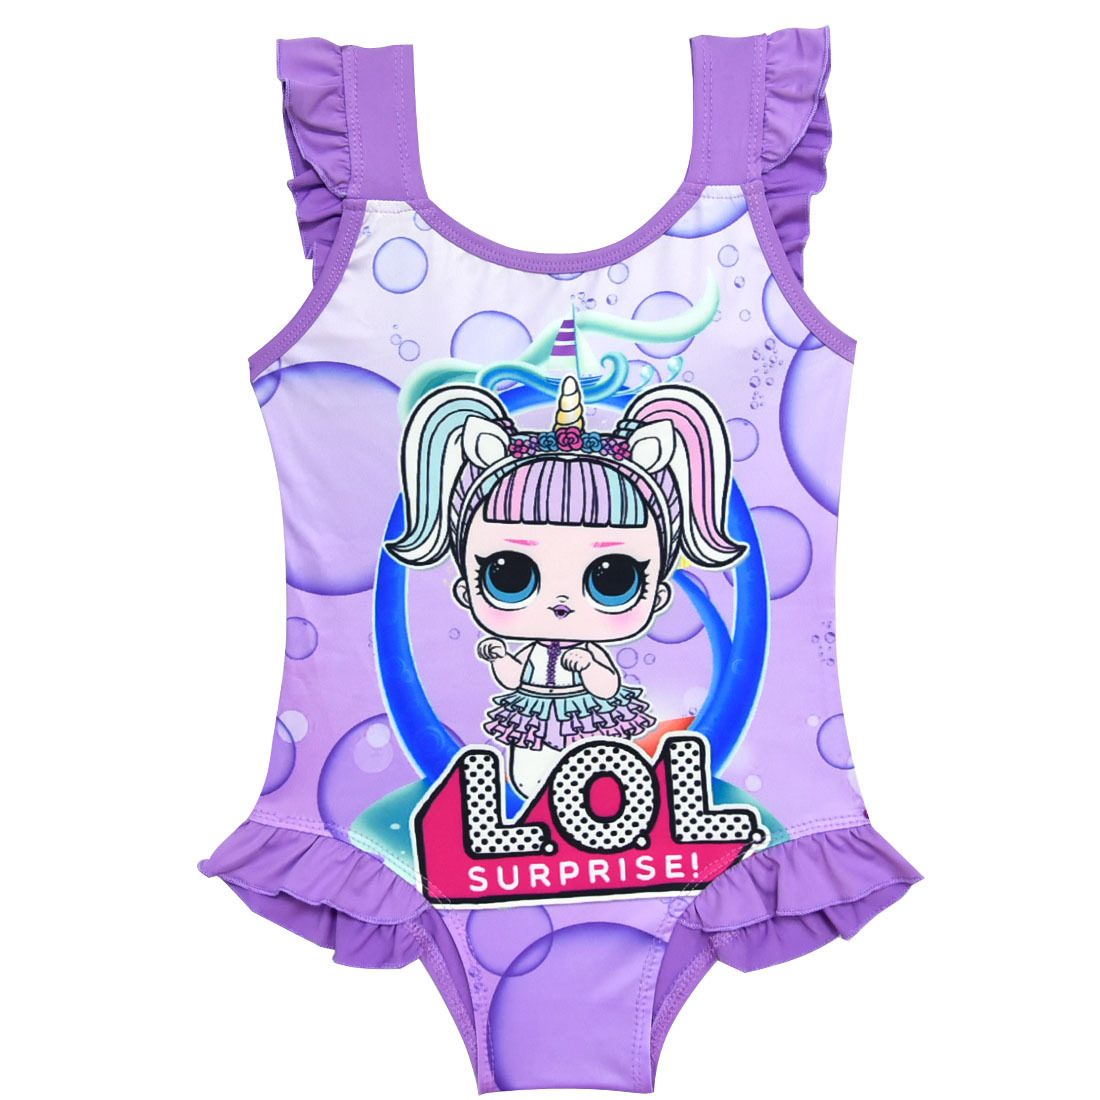 CHILDREN'S Swimsuit 2019 New Style GIRL'S One-piece Swimsuit Child Bathing Suit One-piece Beach Hot Springs 7959